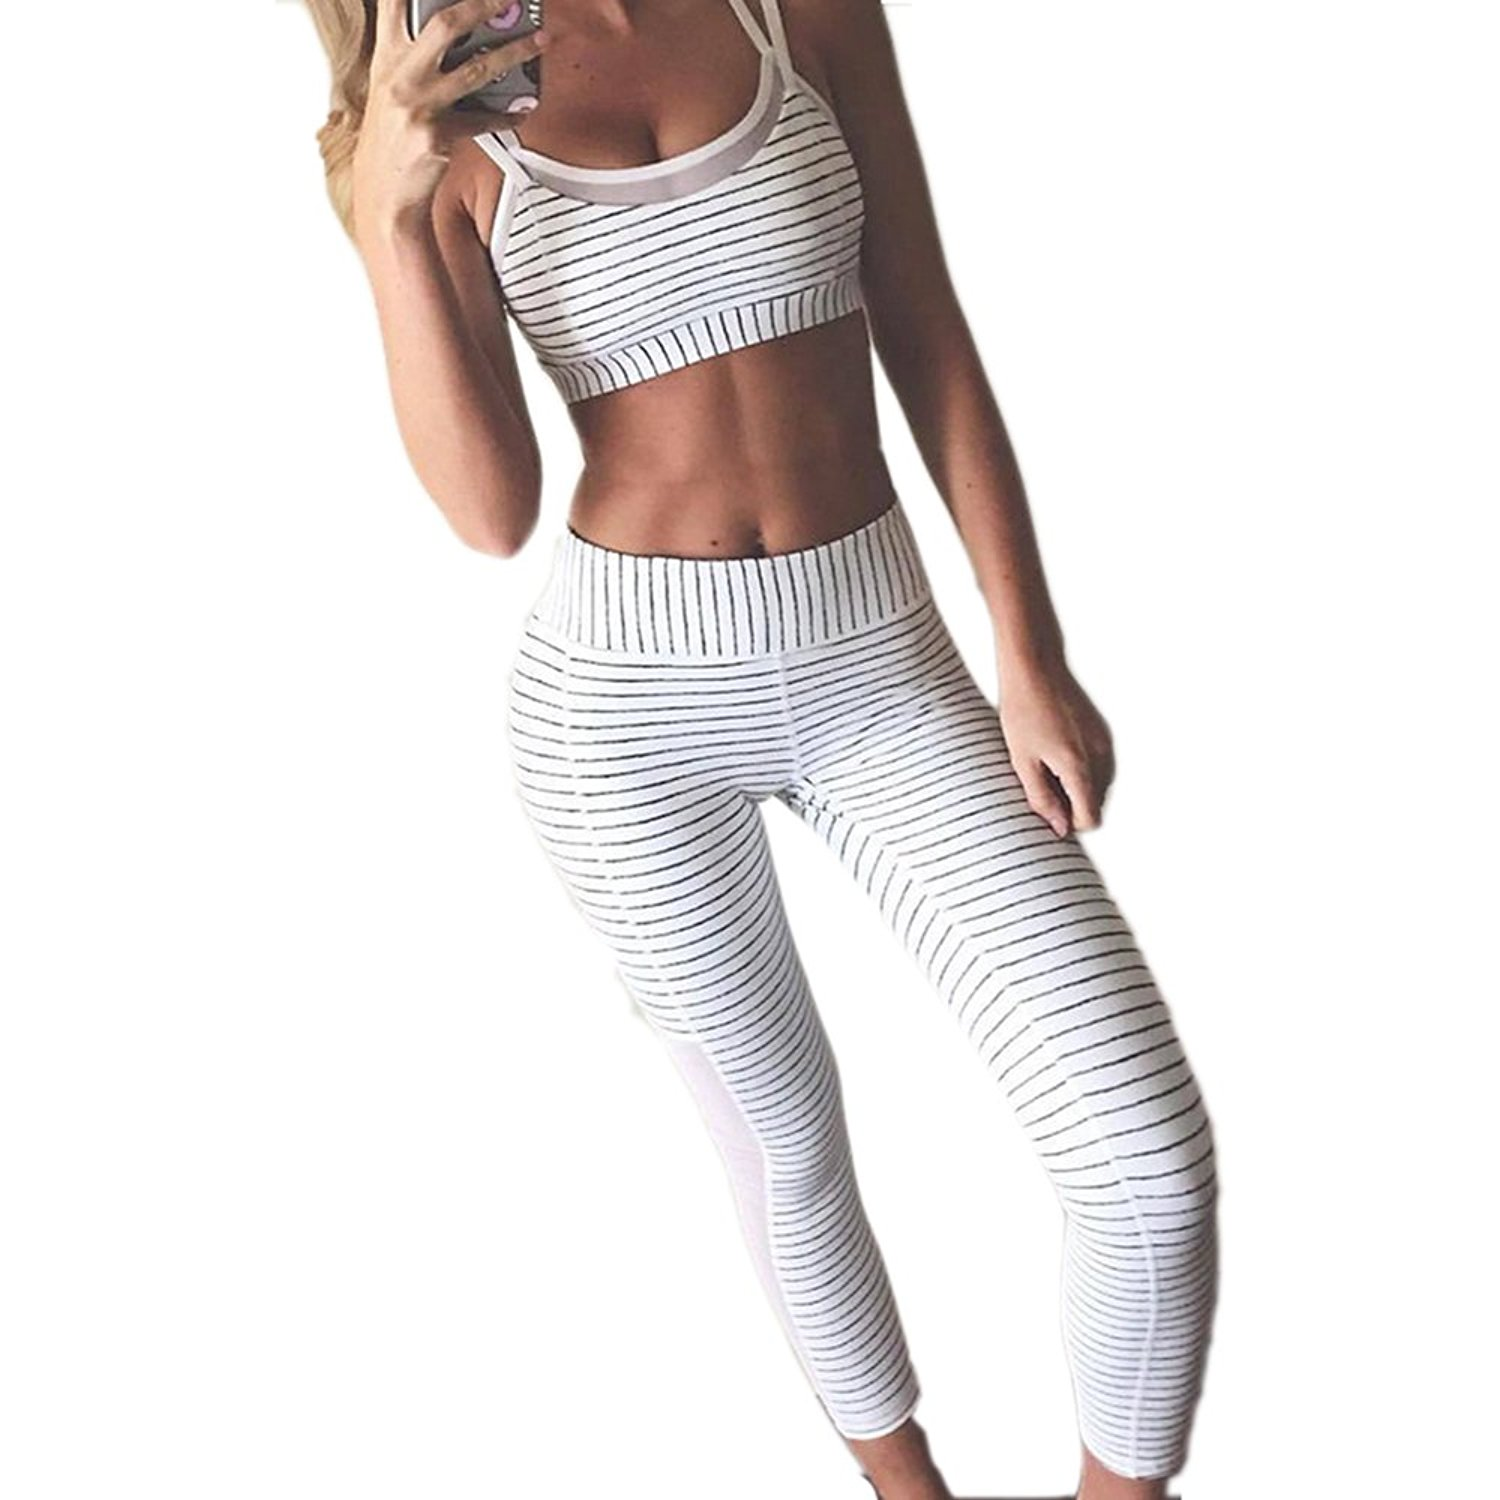 90d1f7396e98c Get Quotations · MVNTOO Black White Stripe Fitness Leggings Tights Women  Yoga Pants Running Gym Workout